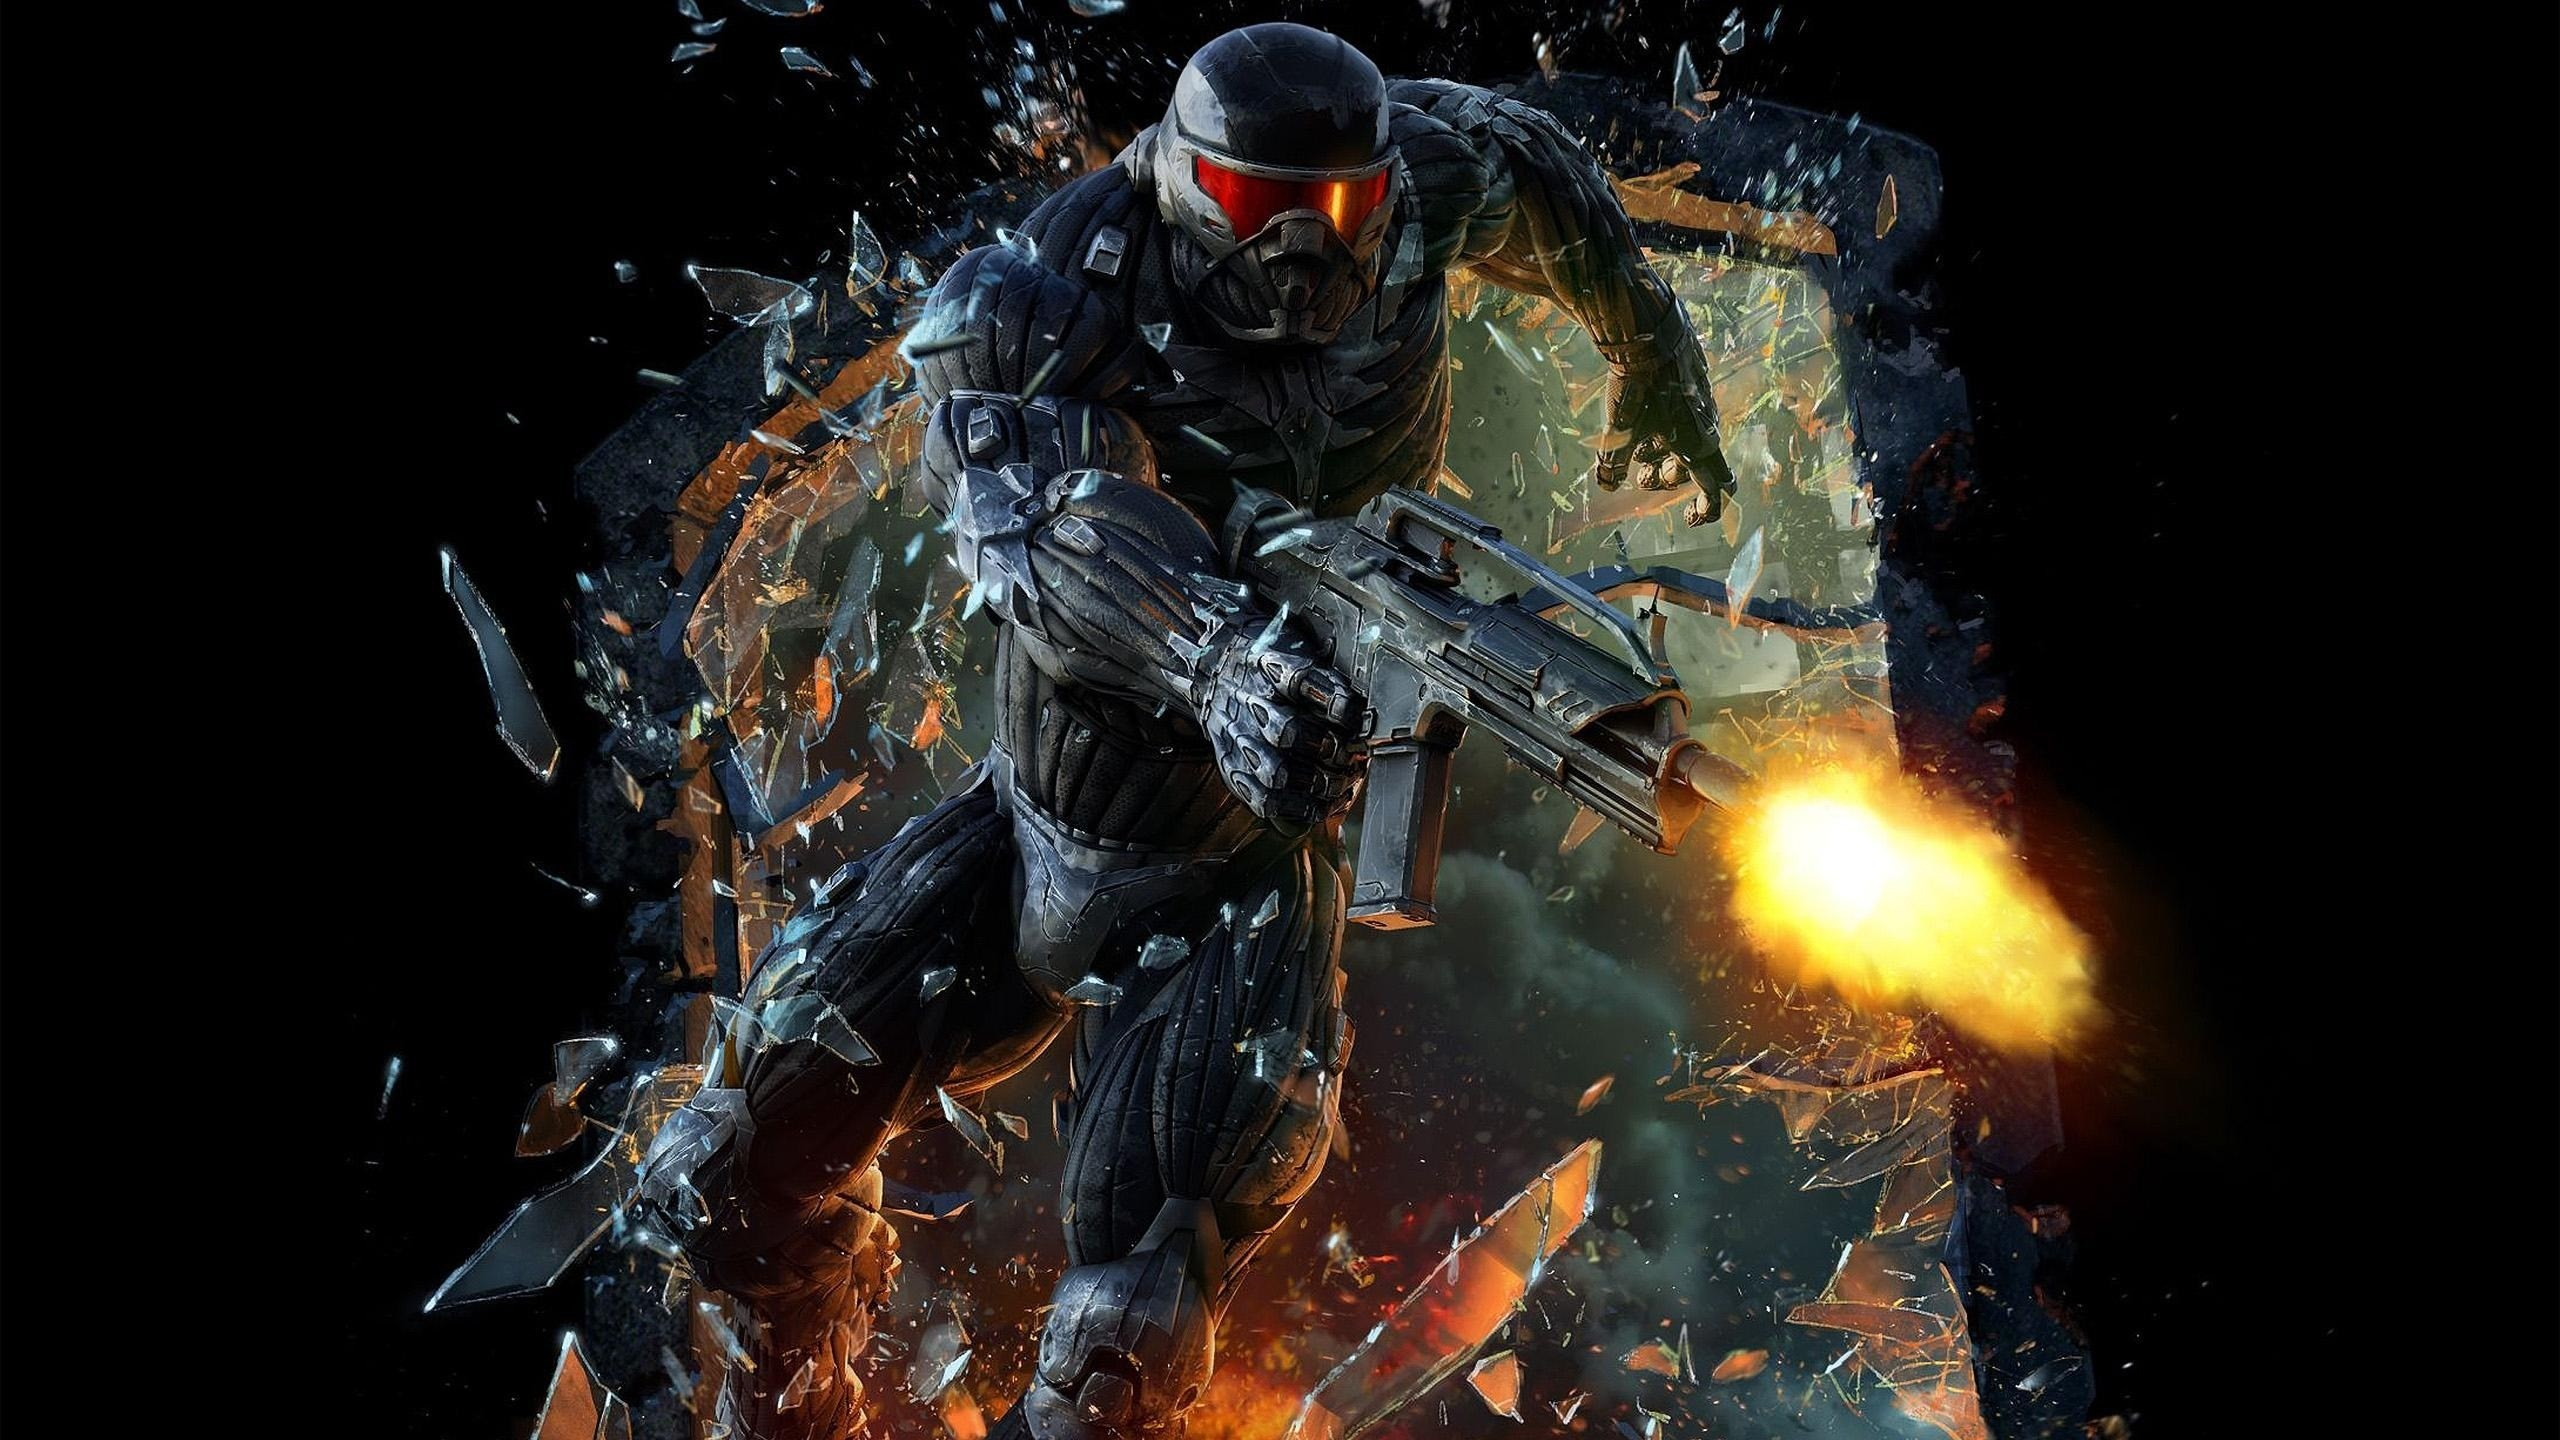 2560x1440 free screensaver wallpapers for crysis 2